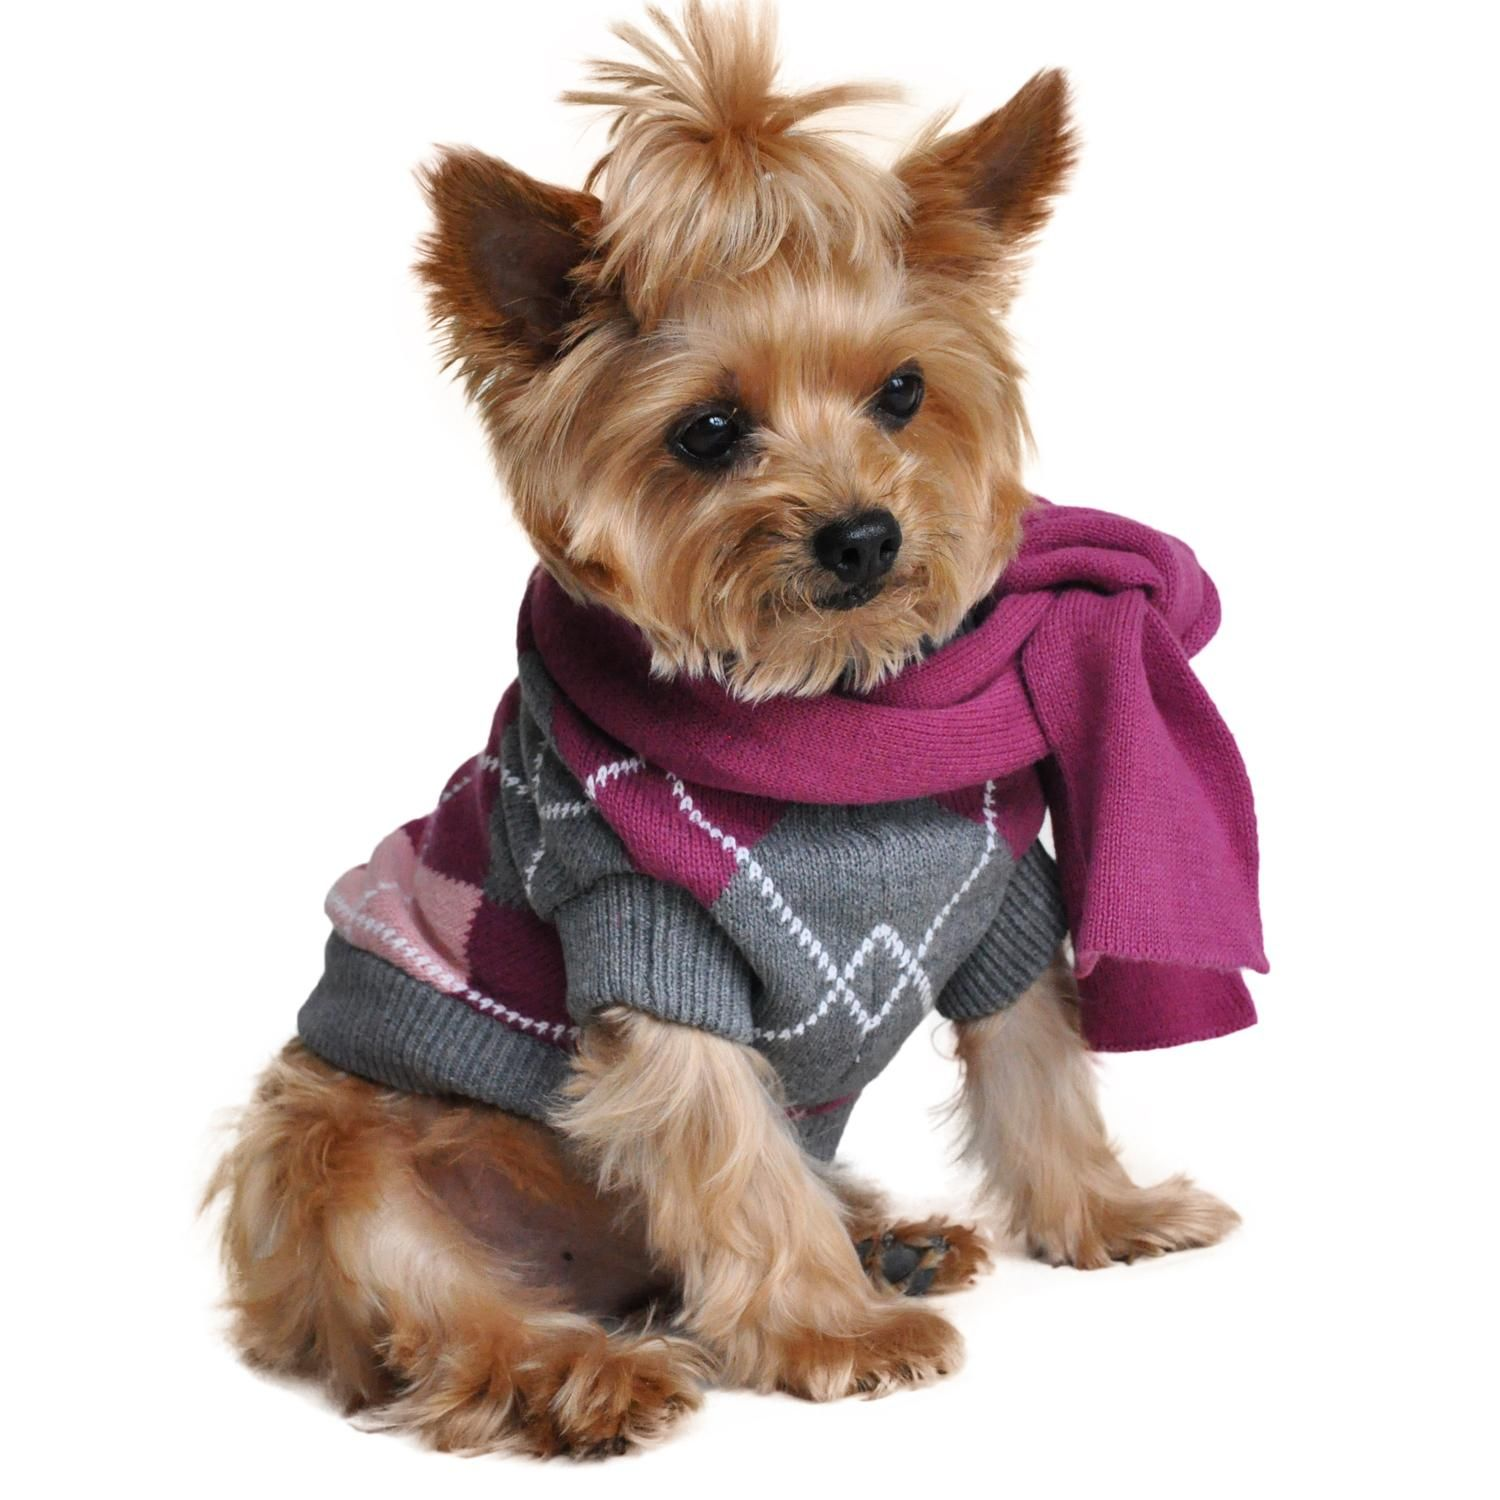 Our Official Argyle Purple Dog Sweater With Scarf By Doggie Design Is The Perfect Product For Almost Any Pet At Cute Dog Clothes Dog Clothes Dog Clothes Female